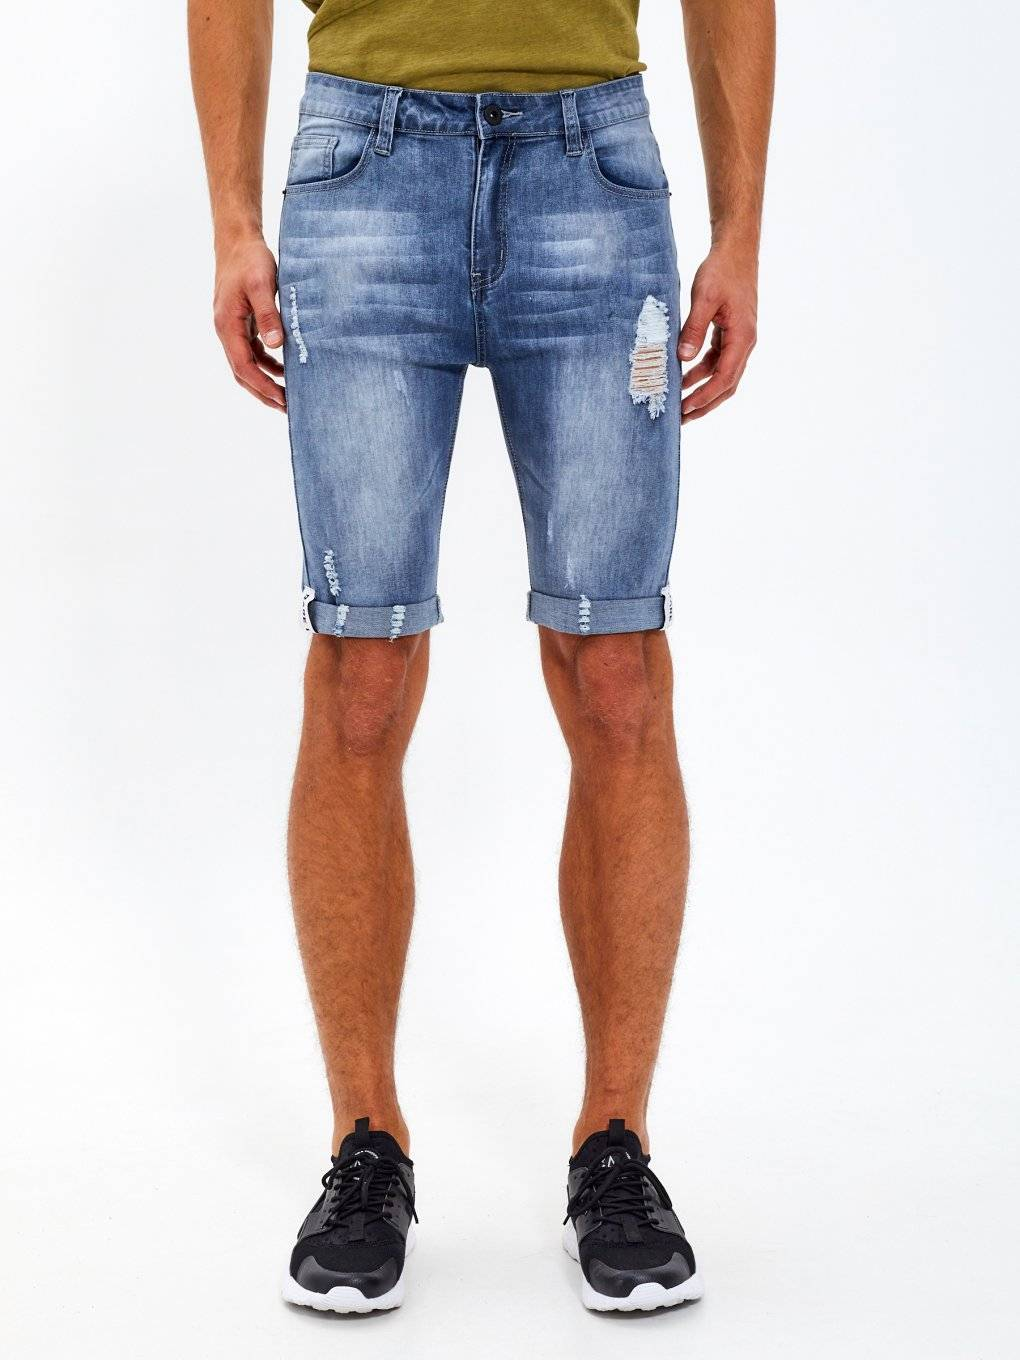 Distressed denim shorts with tapes